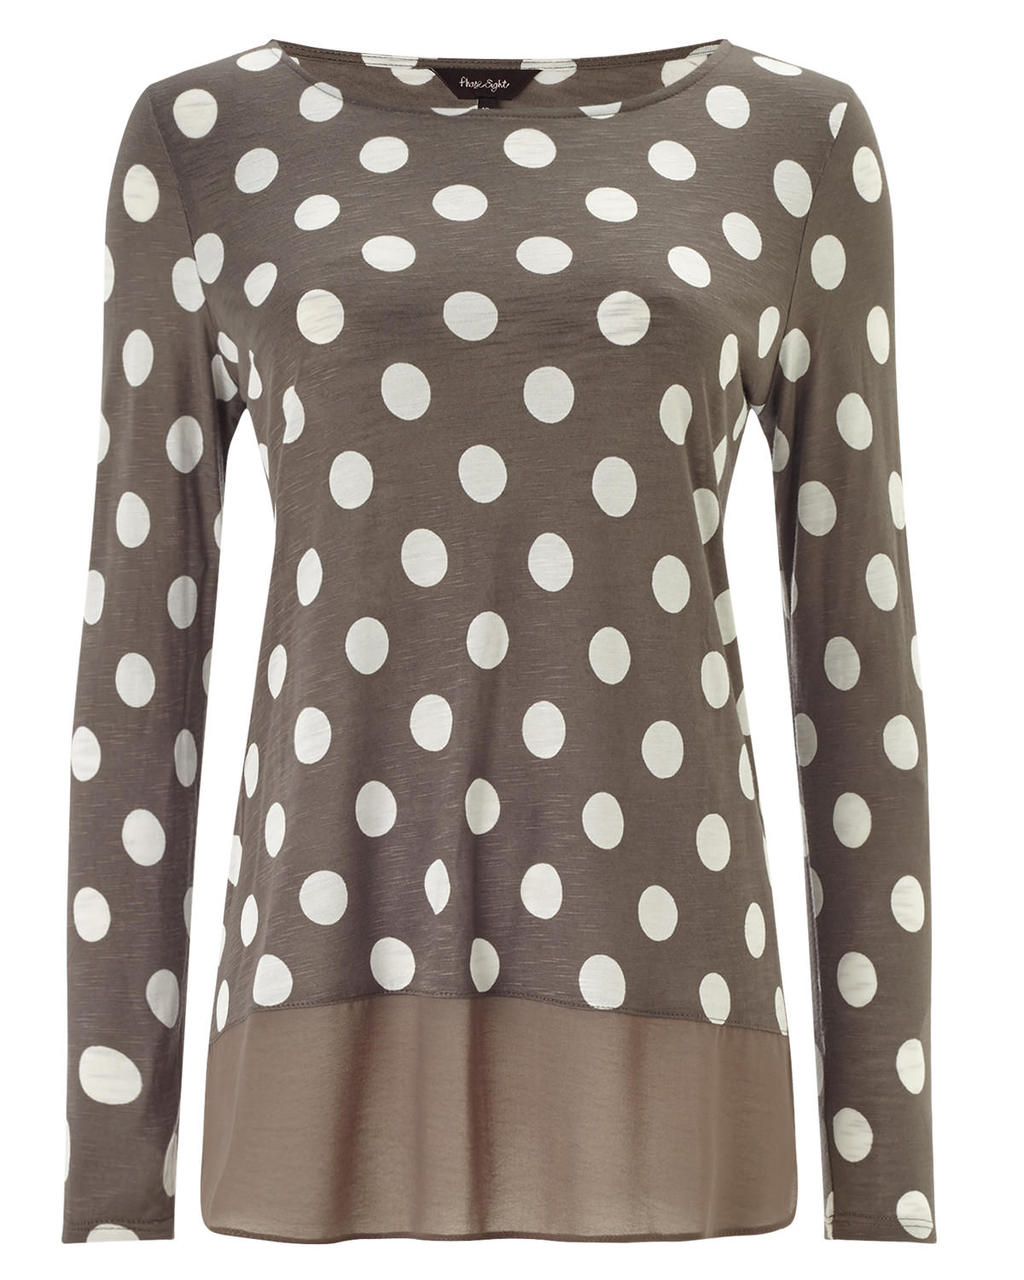 Kelly Spot Woven Hem Top - neckline: round neck; length: below the bottom; style: t-shirt; pattern: polka dot; secondary colour: white; predominant colour: taupe; occasions: casual, creative work; fibres: polyester/polyamide - 100%; fit: body skimming; sleeve length: long sleeve; sleeve style: standard; pattern type: fabric; pattern size: light/subtle; texture group: jersey - stretchy/drapey; season: a/w 2015; wardrobe: highlight